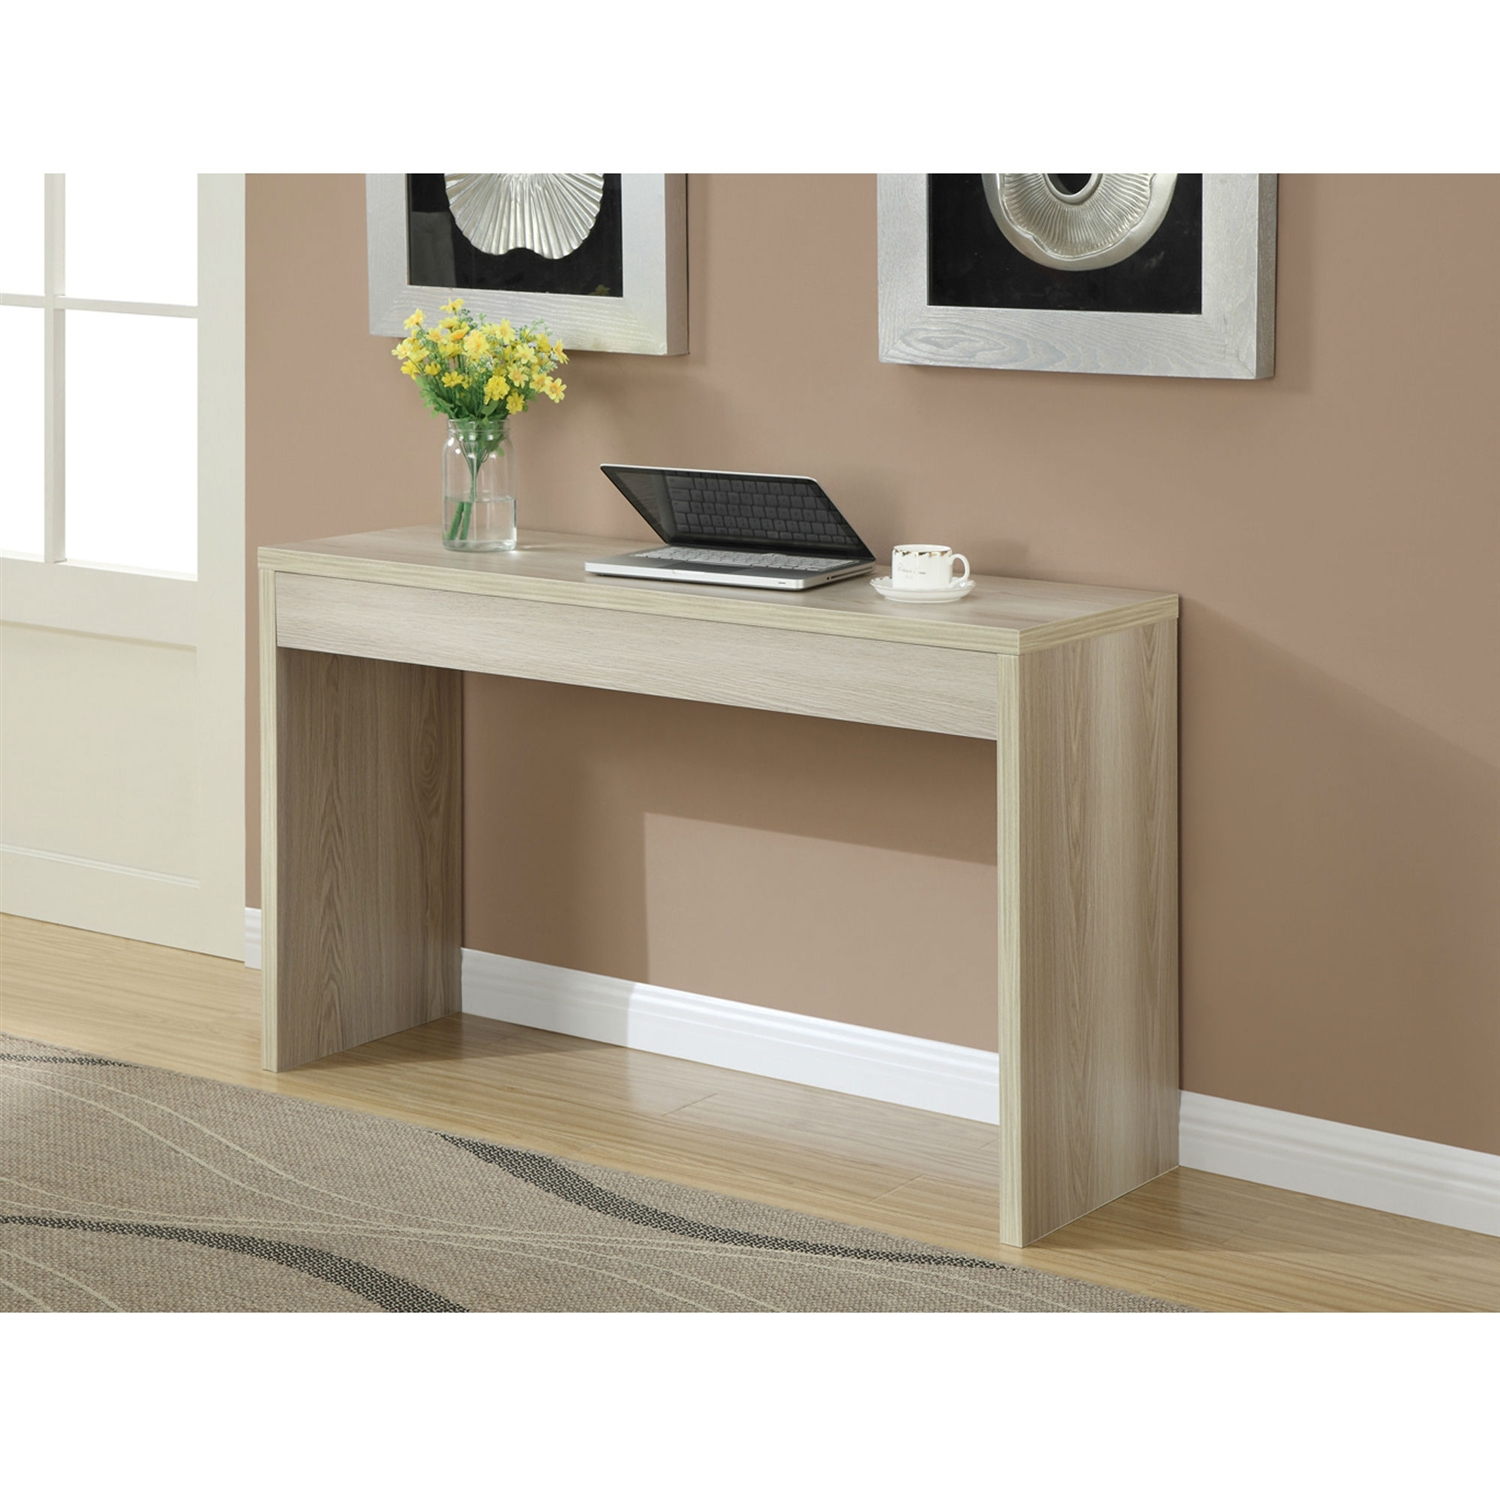 Contemporary Sofa Table Console Table in Weathered White Wood